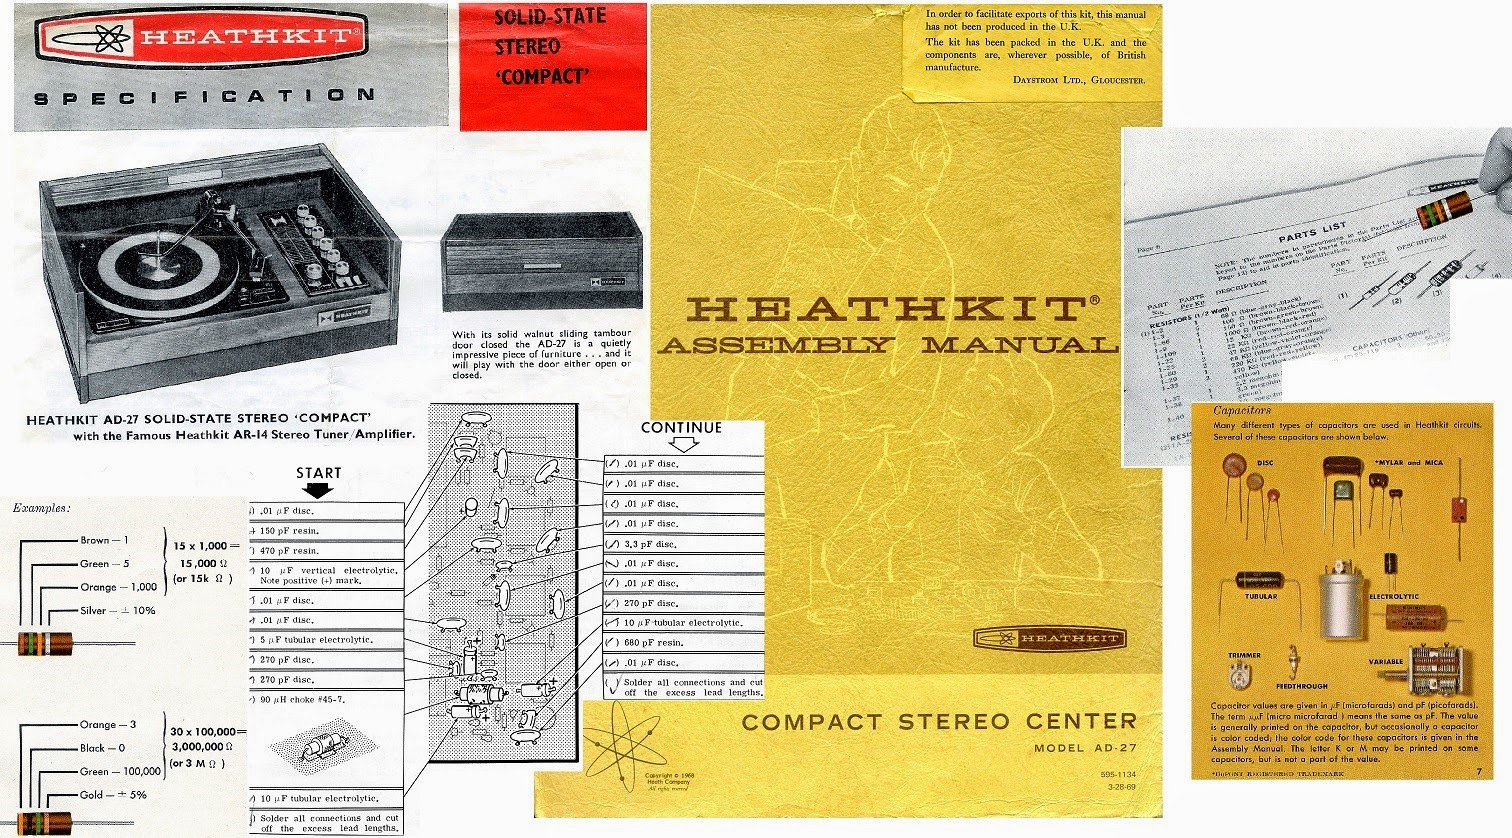 Heathkit AD-27 documentation